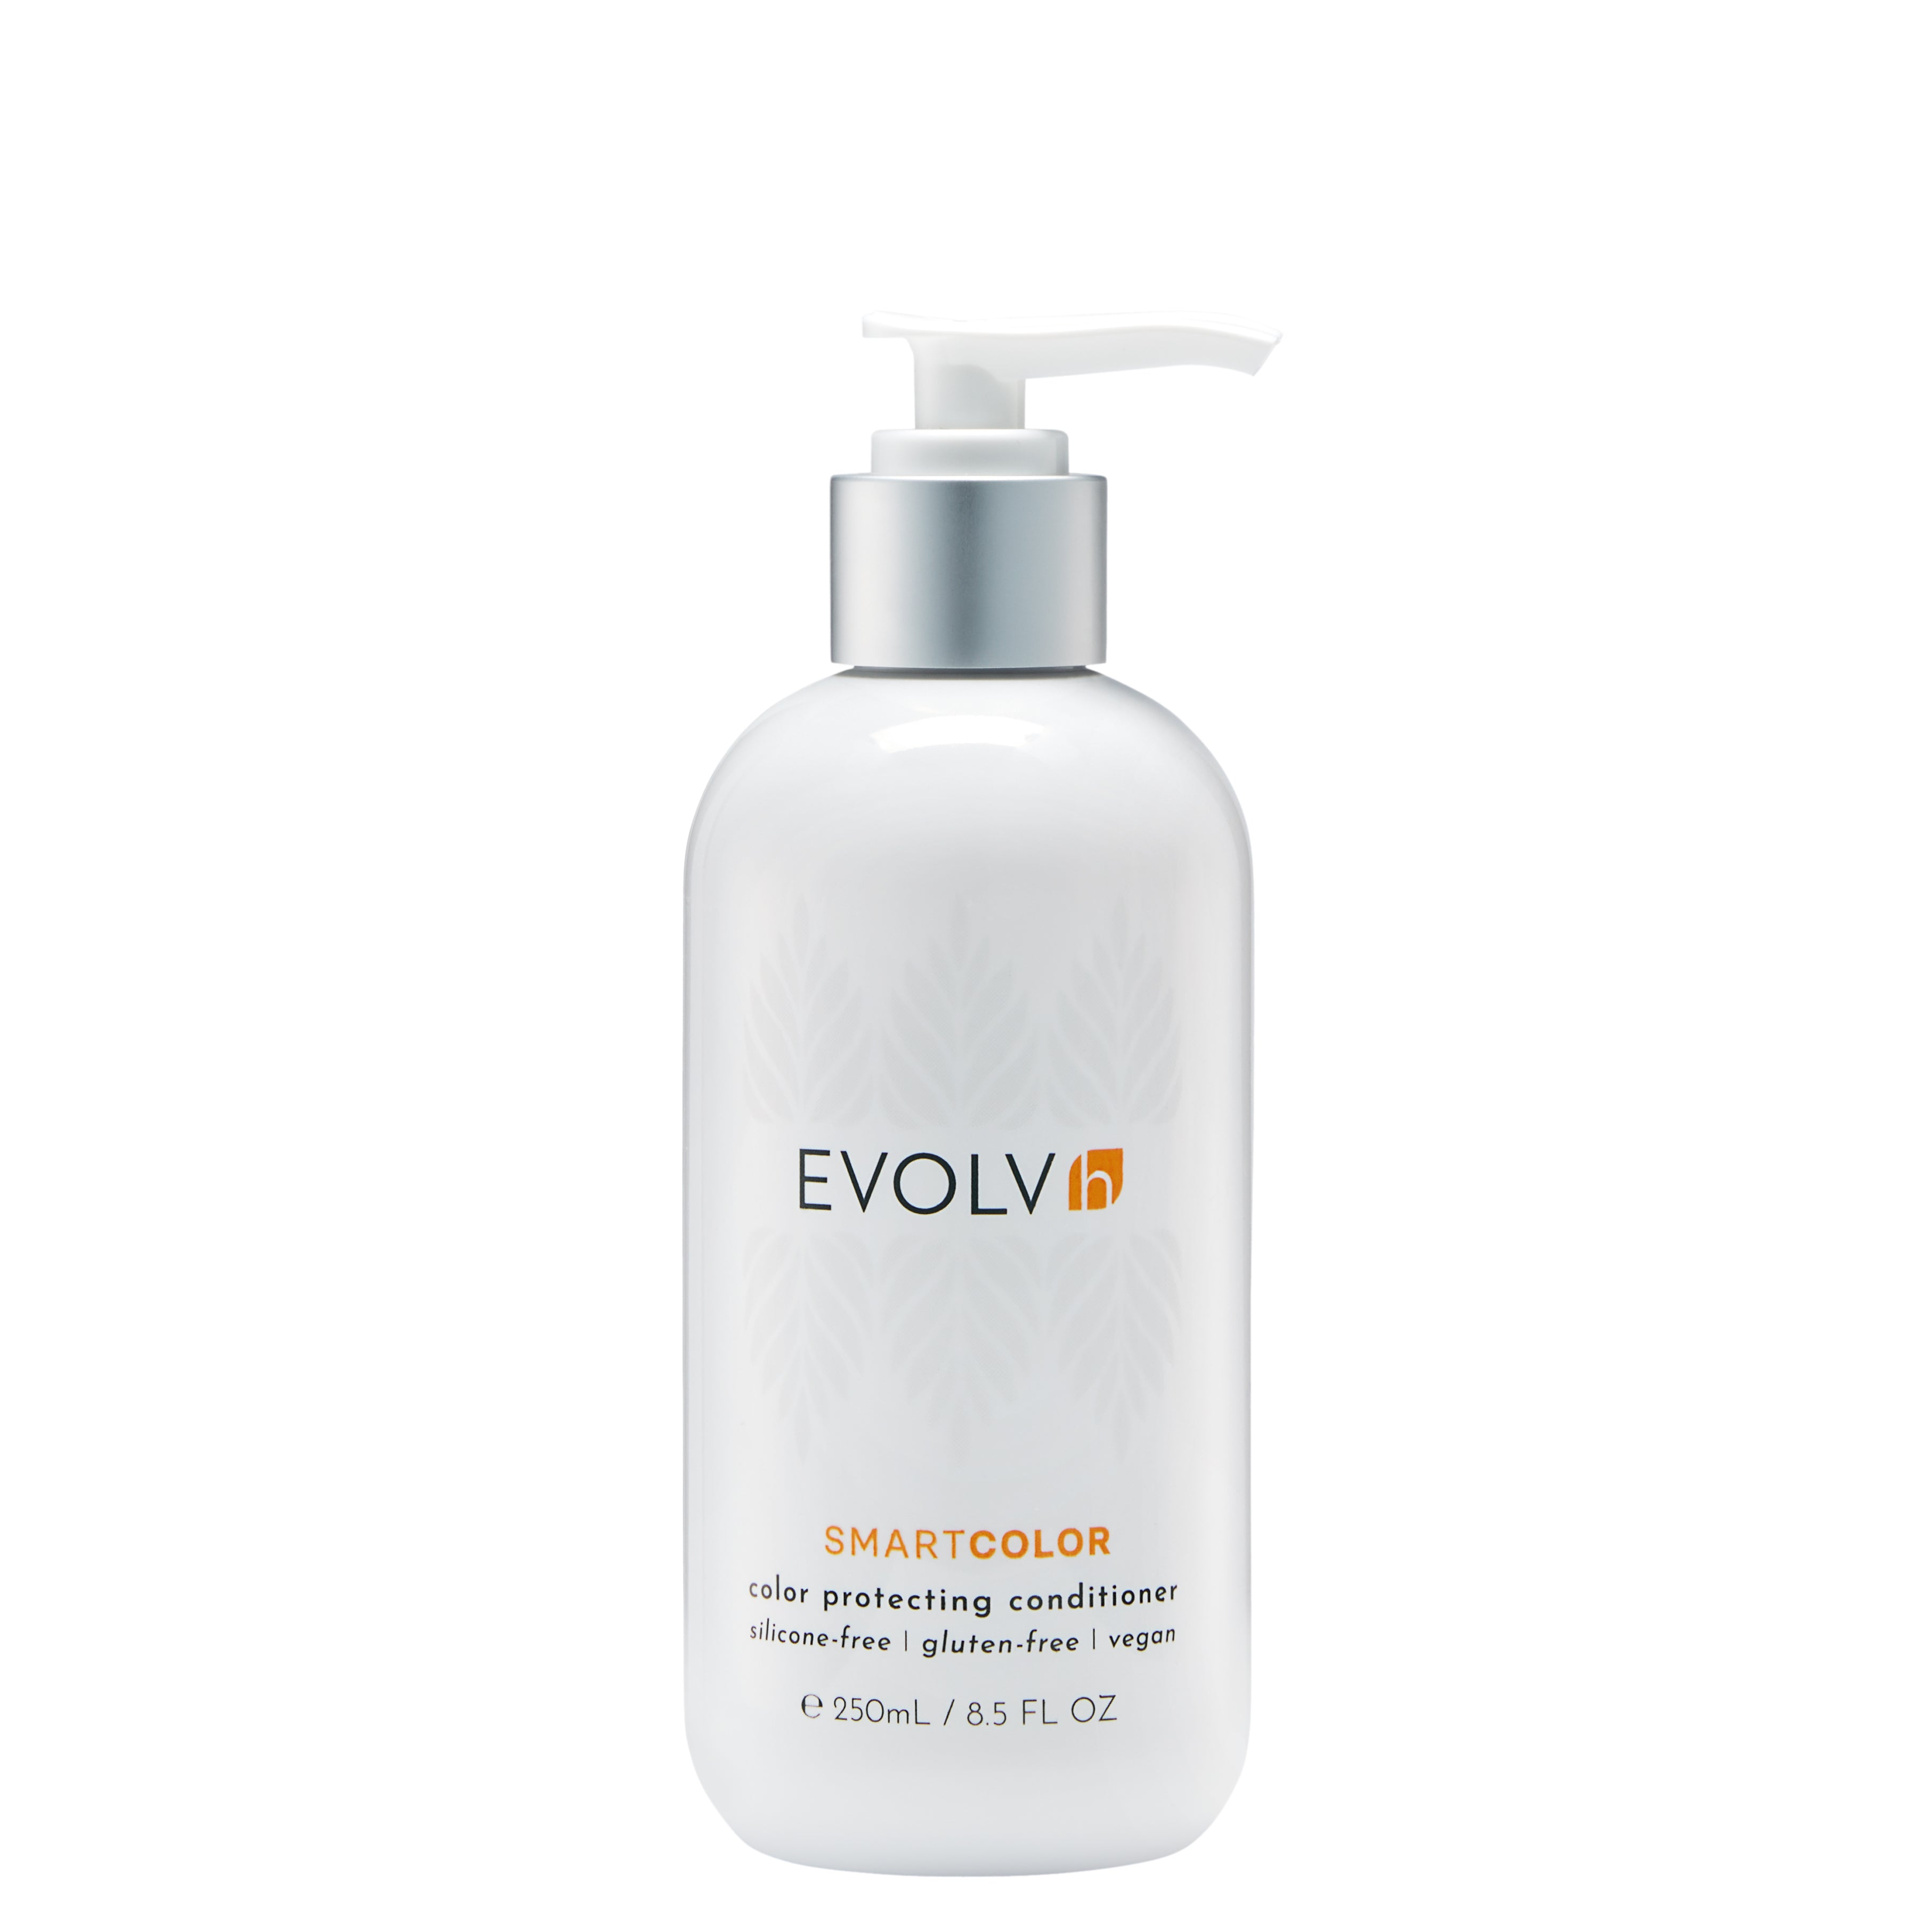 Evolvh SmartColor Protecting Conditioner